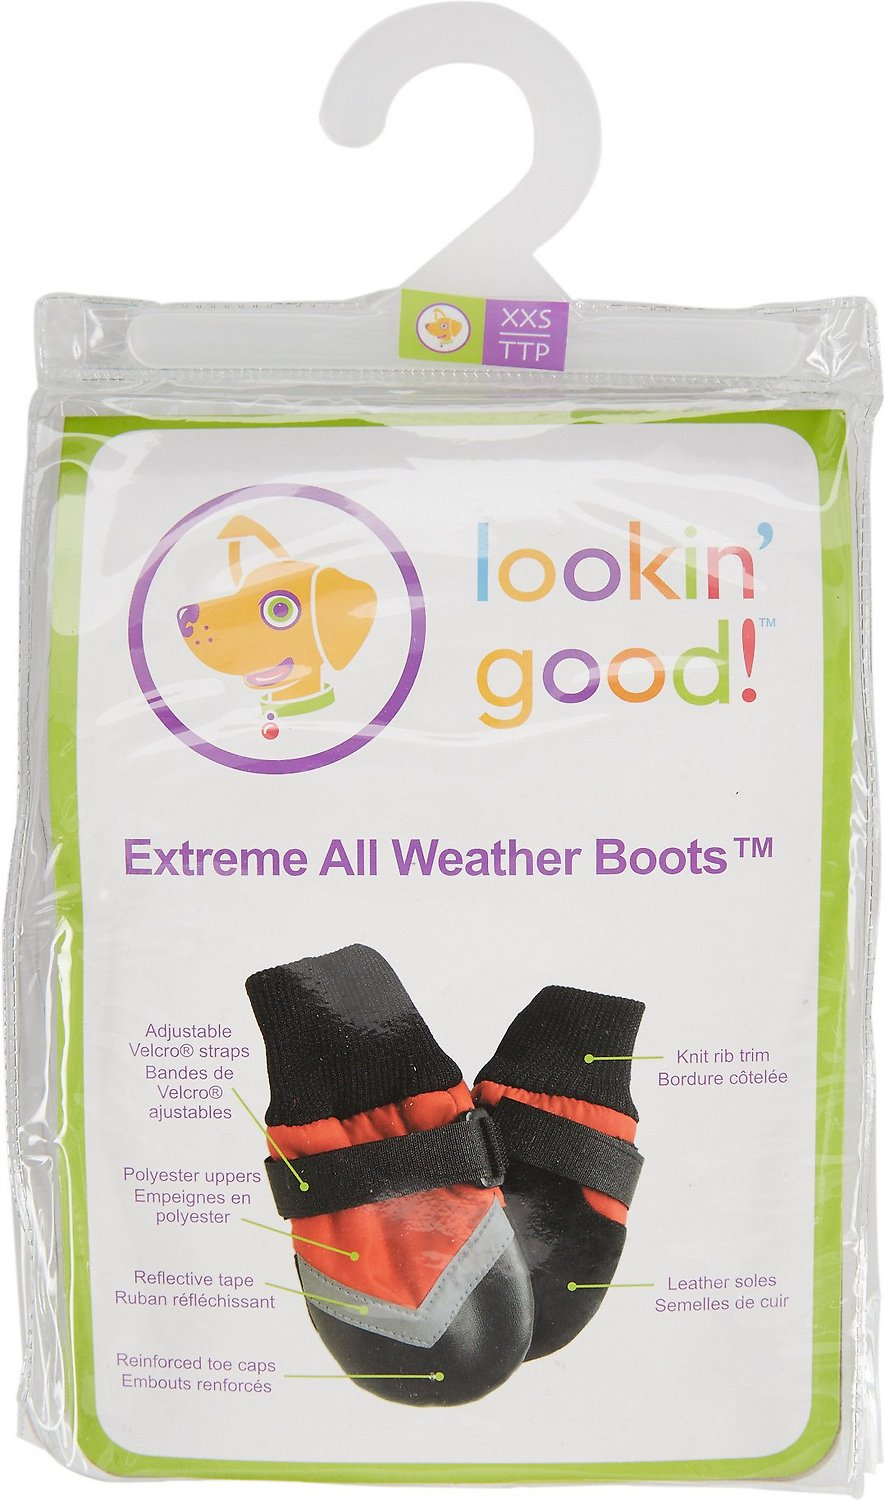 Fashion pet arctic fleece boots Dog Shoes: Boots, Socks Shoes for Dogs PetSmart